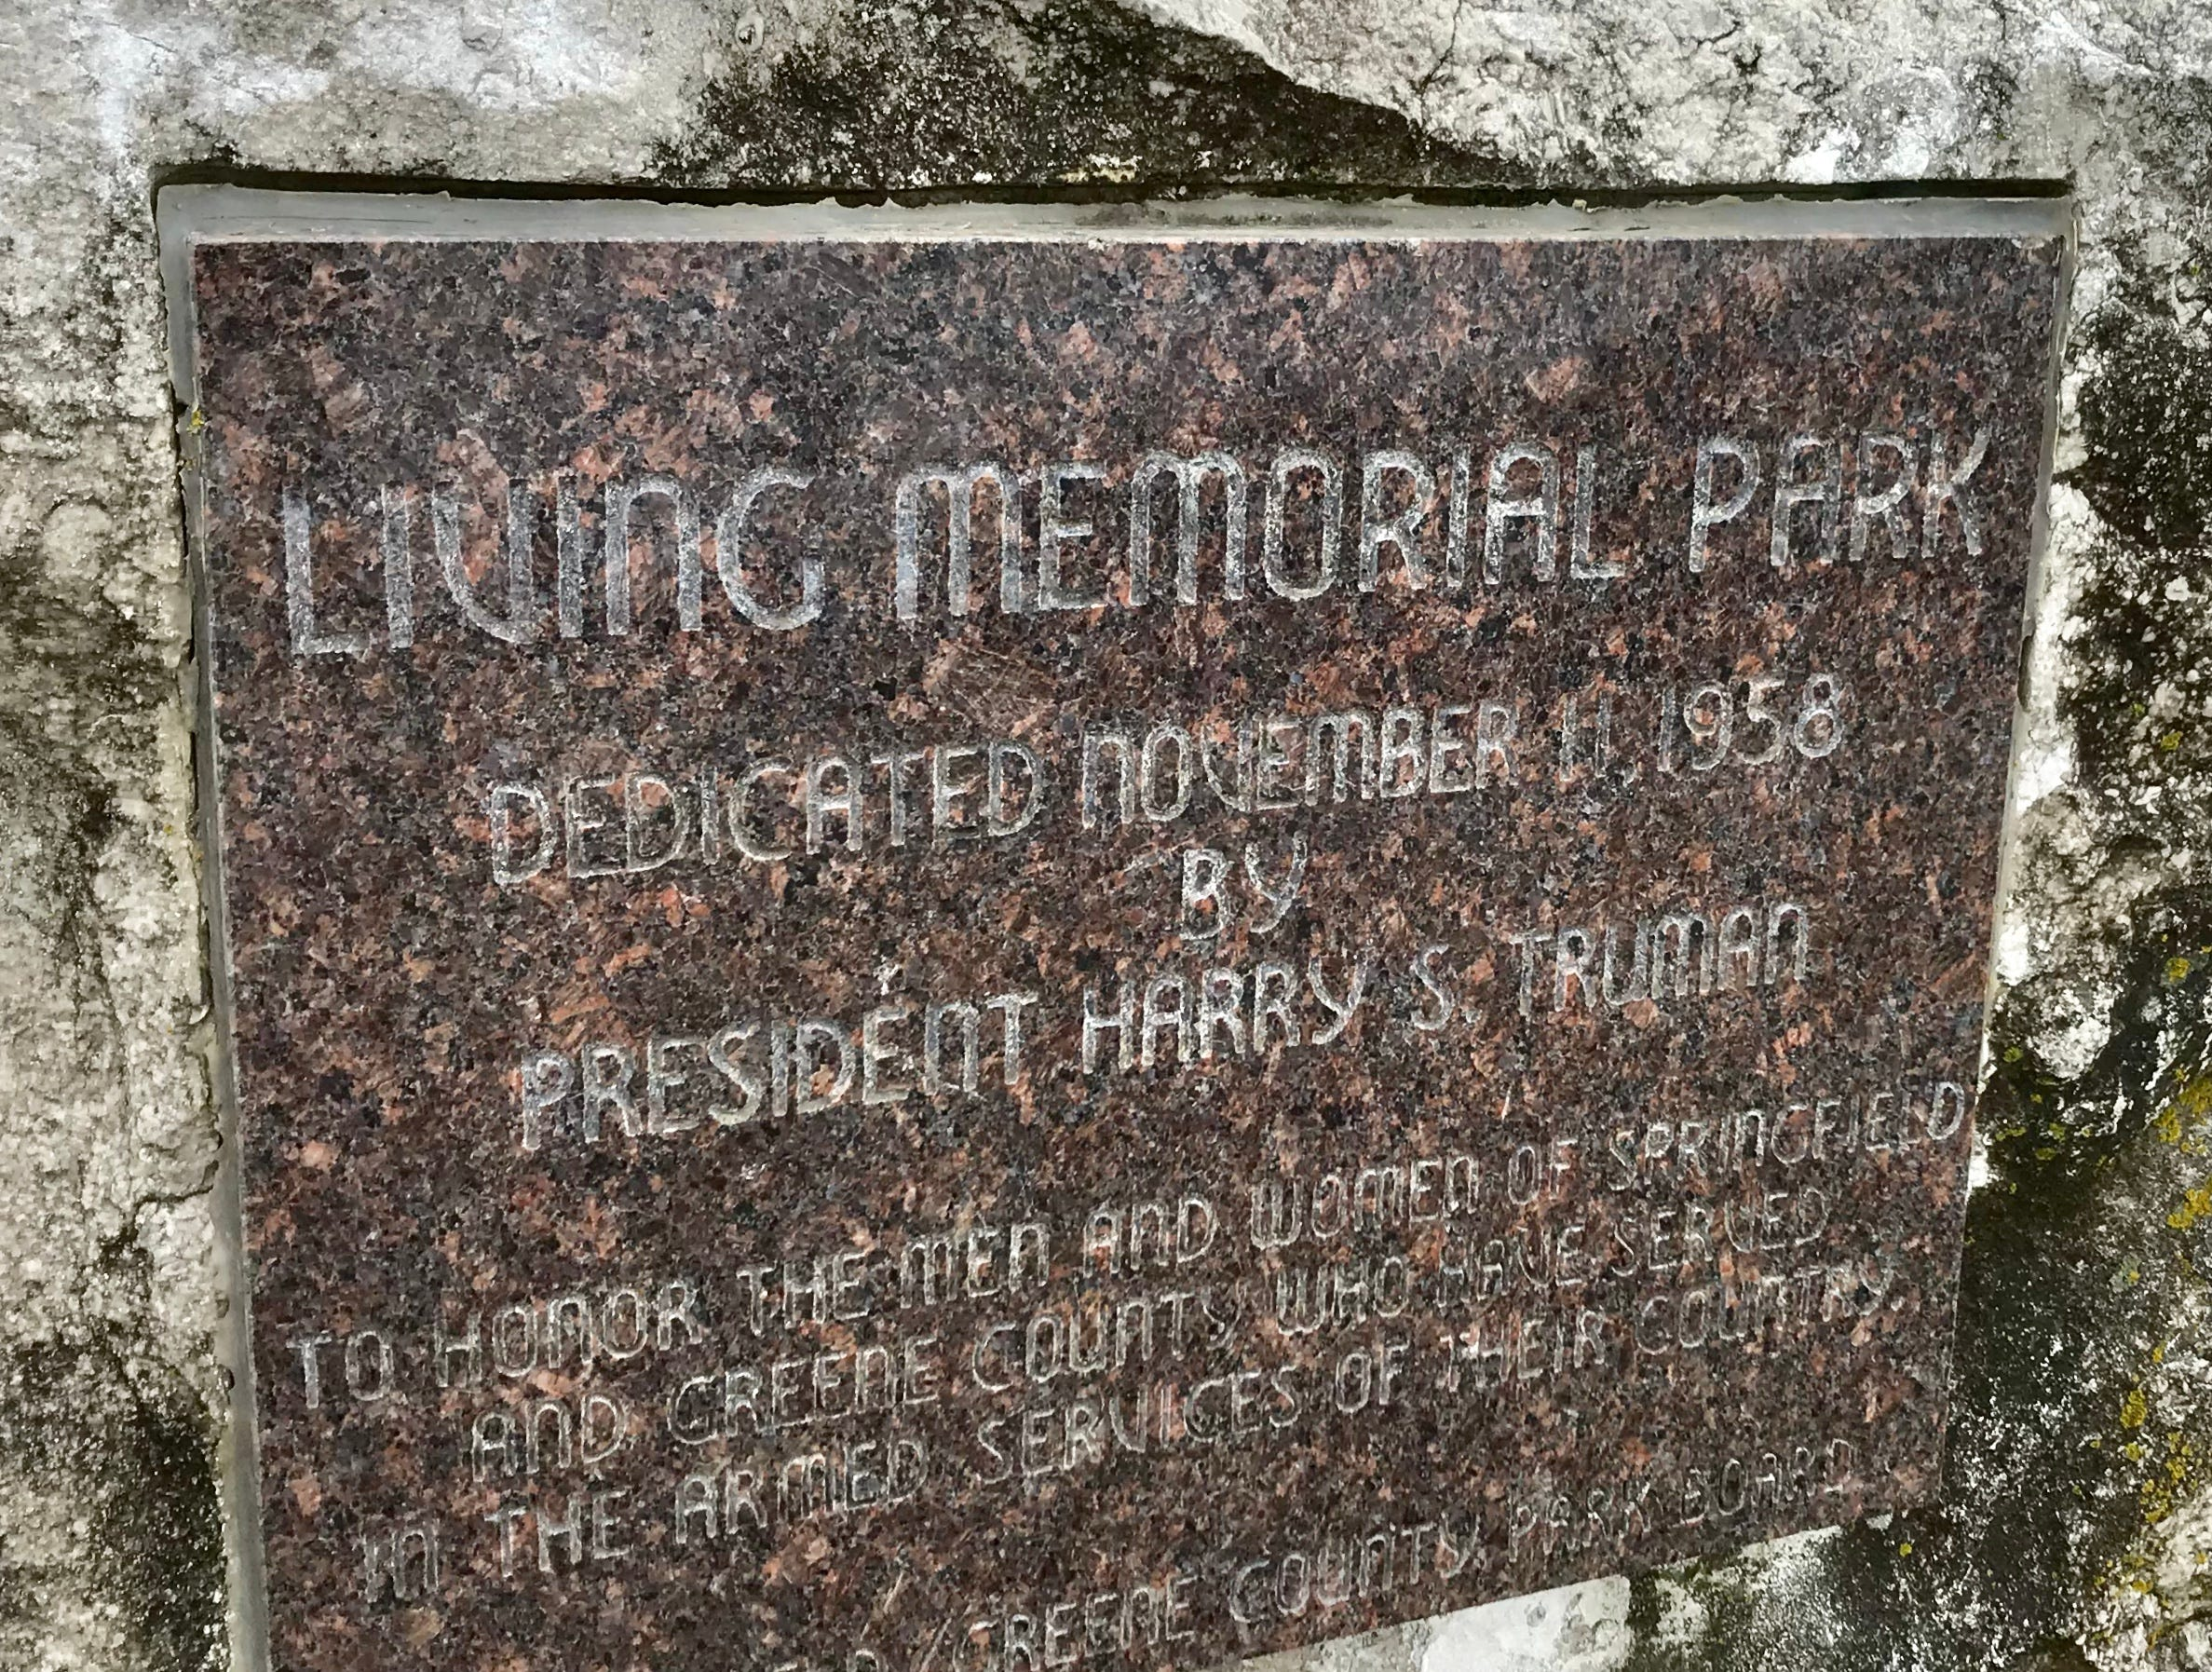 President Harry S. Truman dedicated Living Memorial Park on Nov. 11, 1958. Truman was an ex-president at the time; he left office in 1953.